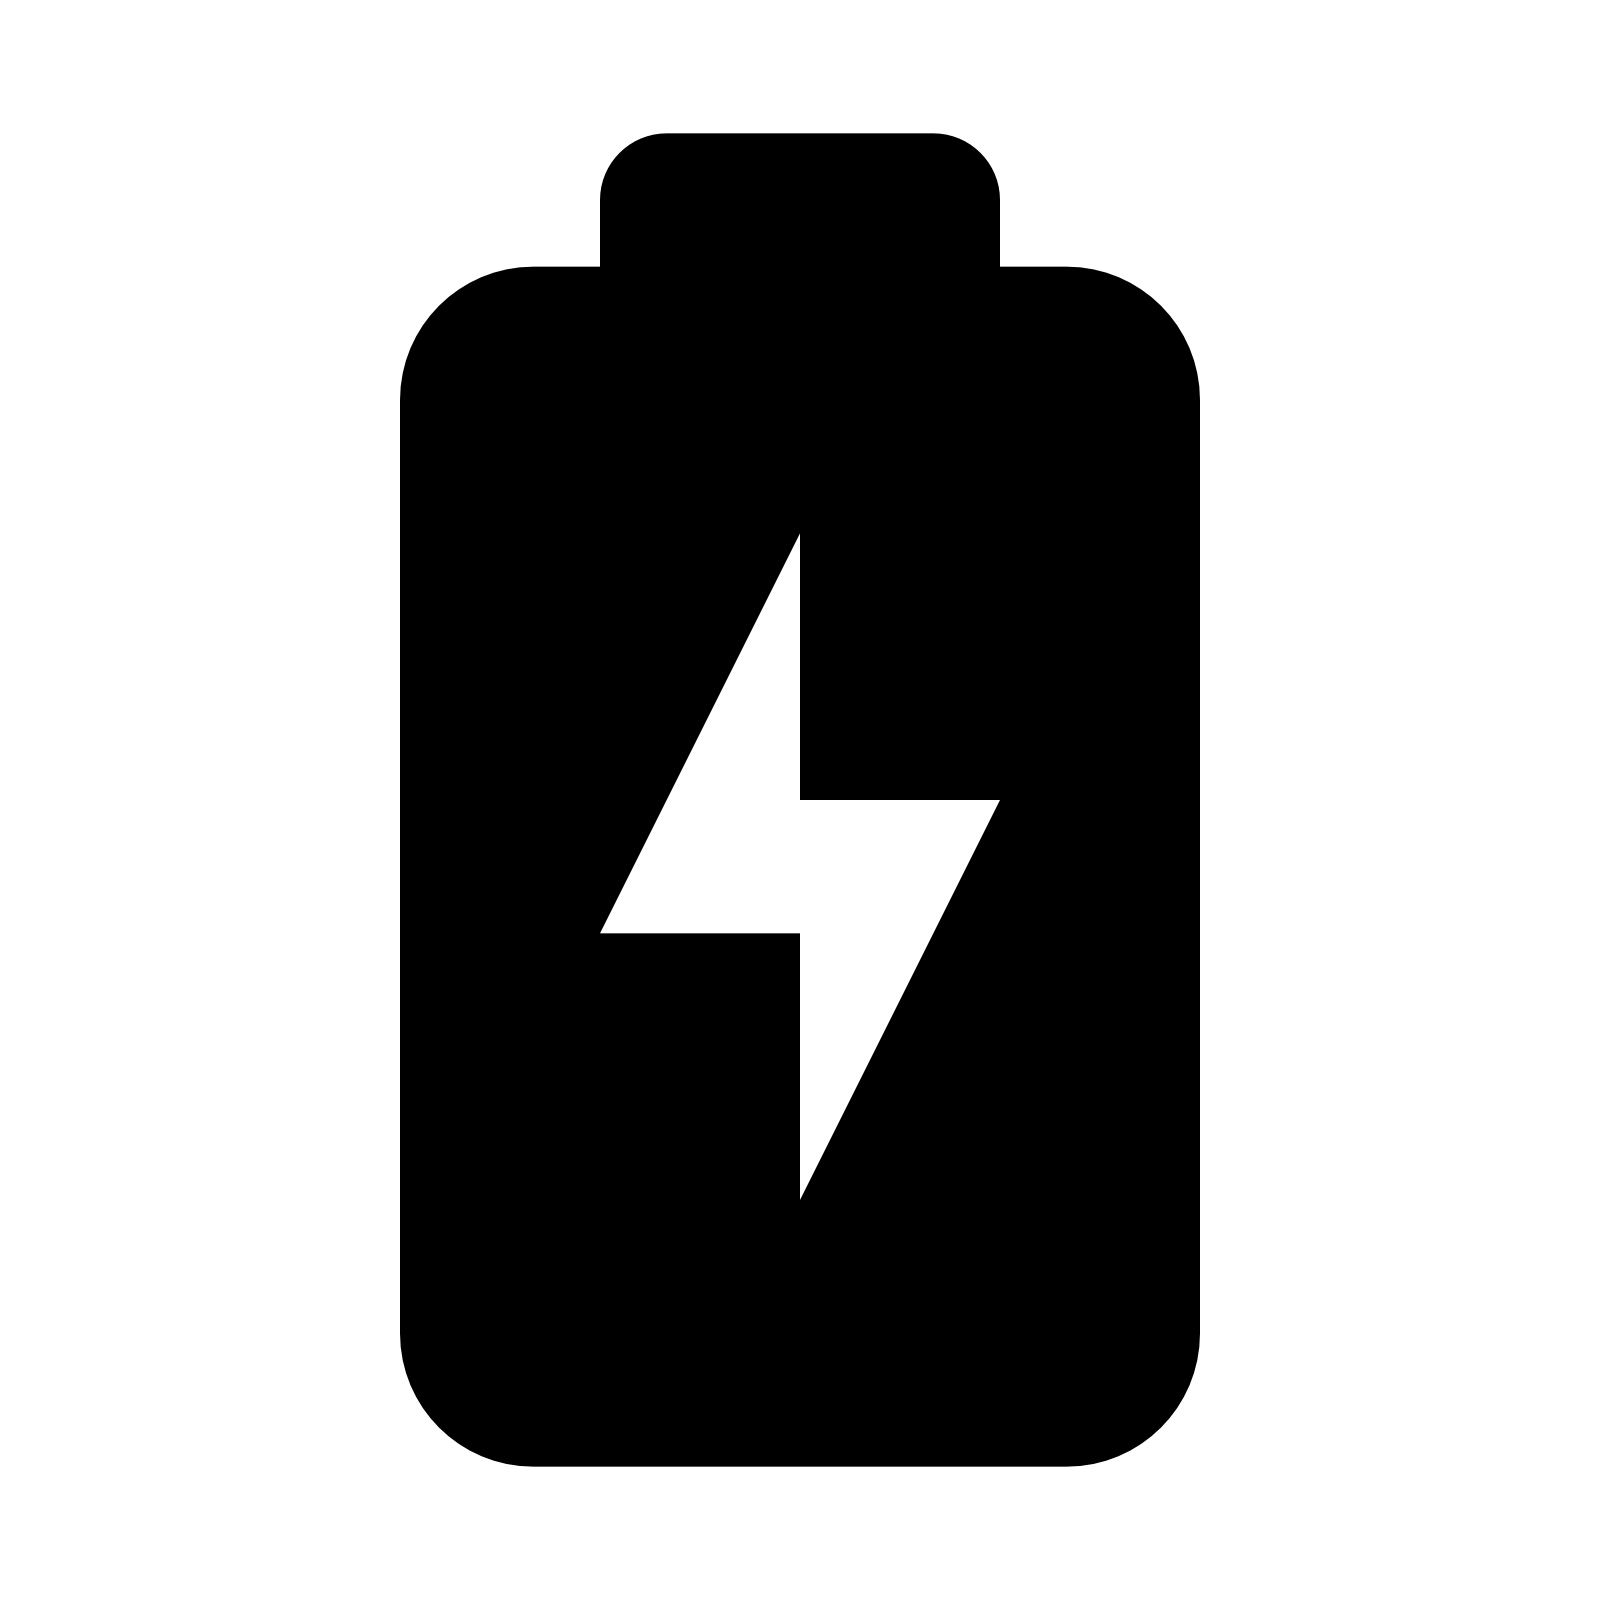 Library Of Battery Charge Bar Silhouette Vector Library